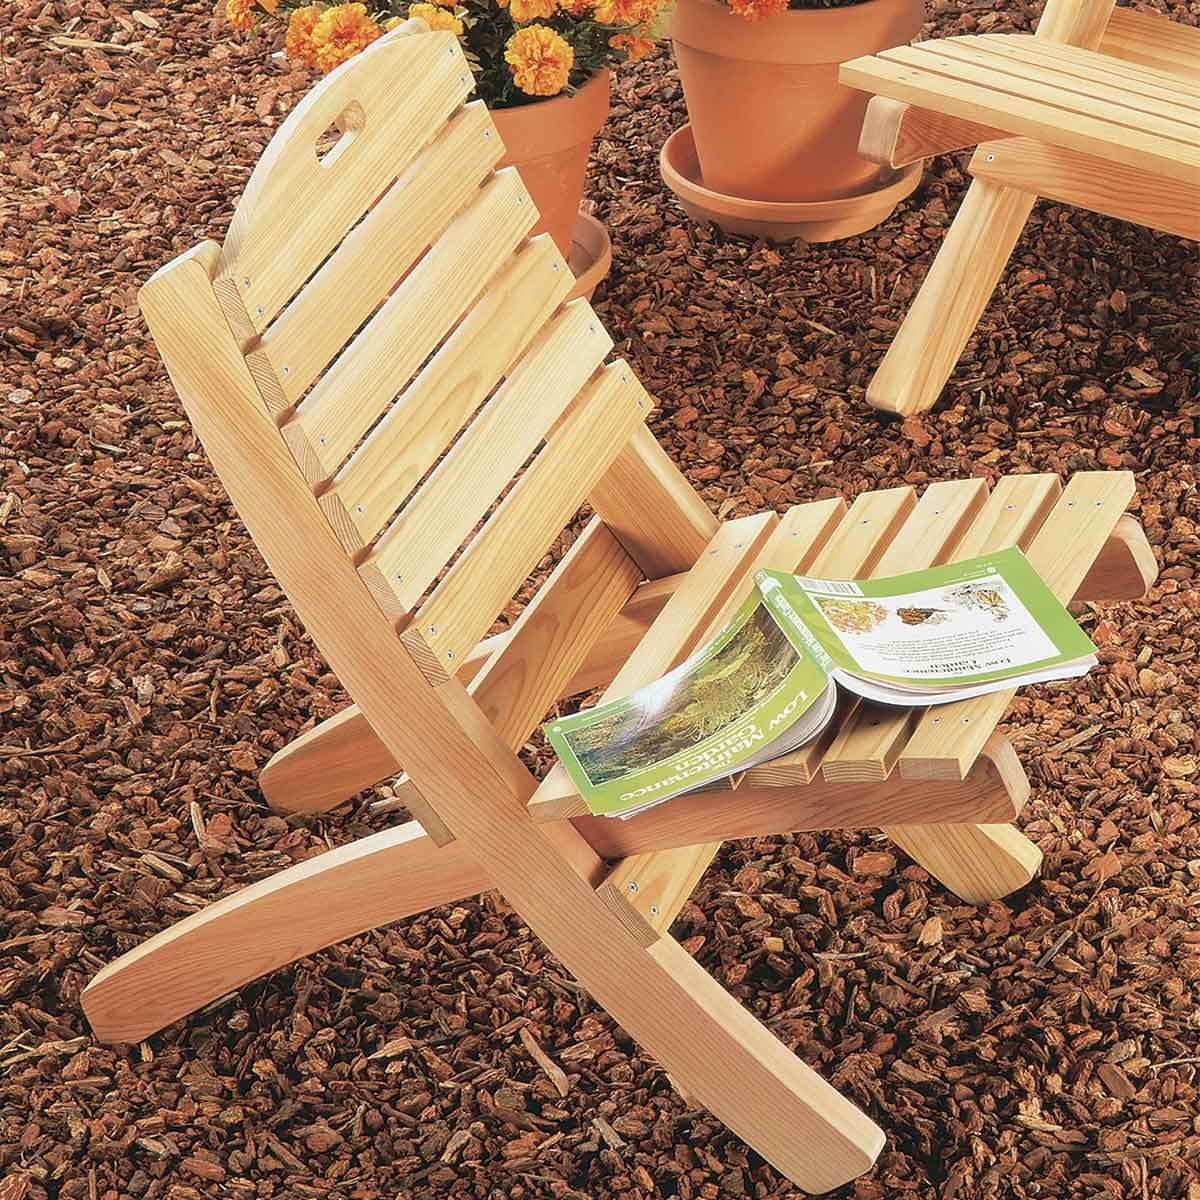 Cute Folding Chairs 15 Awesome Plans For Diy Patio Furniture The Family Handyman